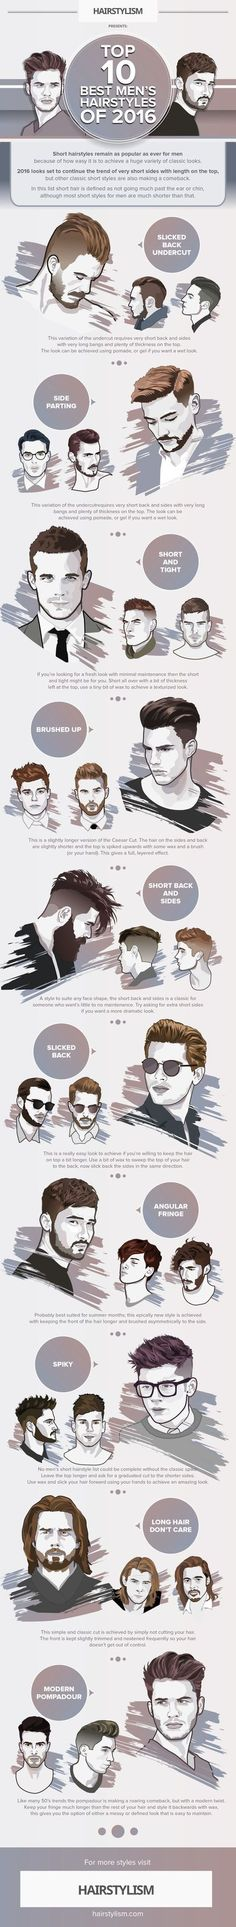 Hairstylism Infographic: